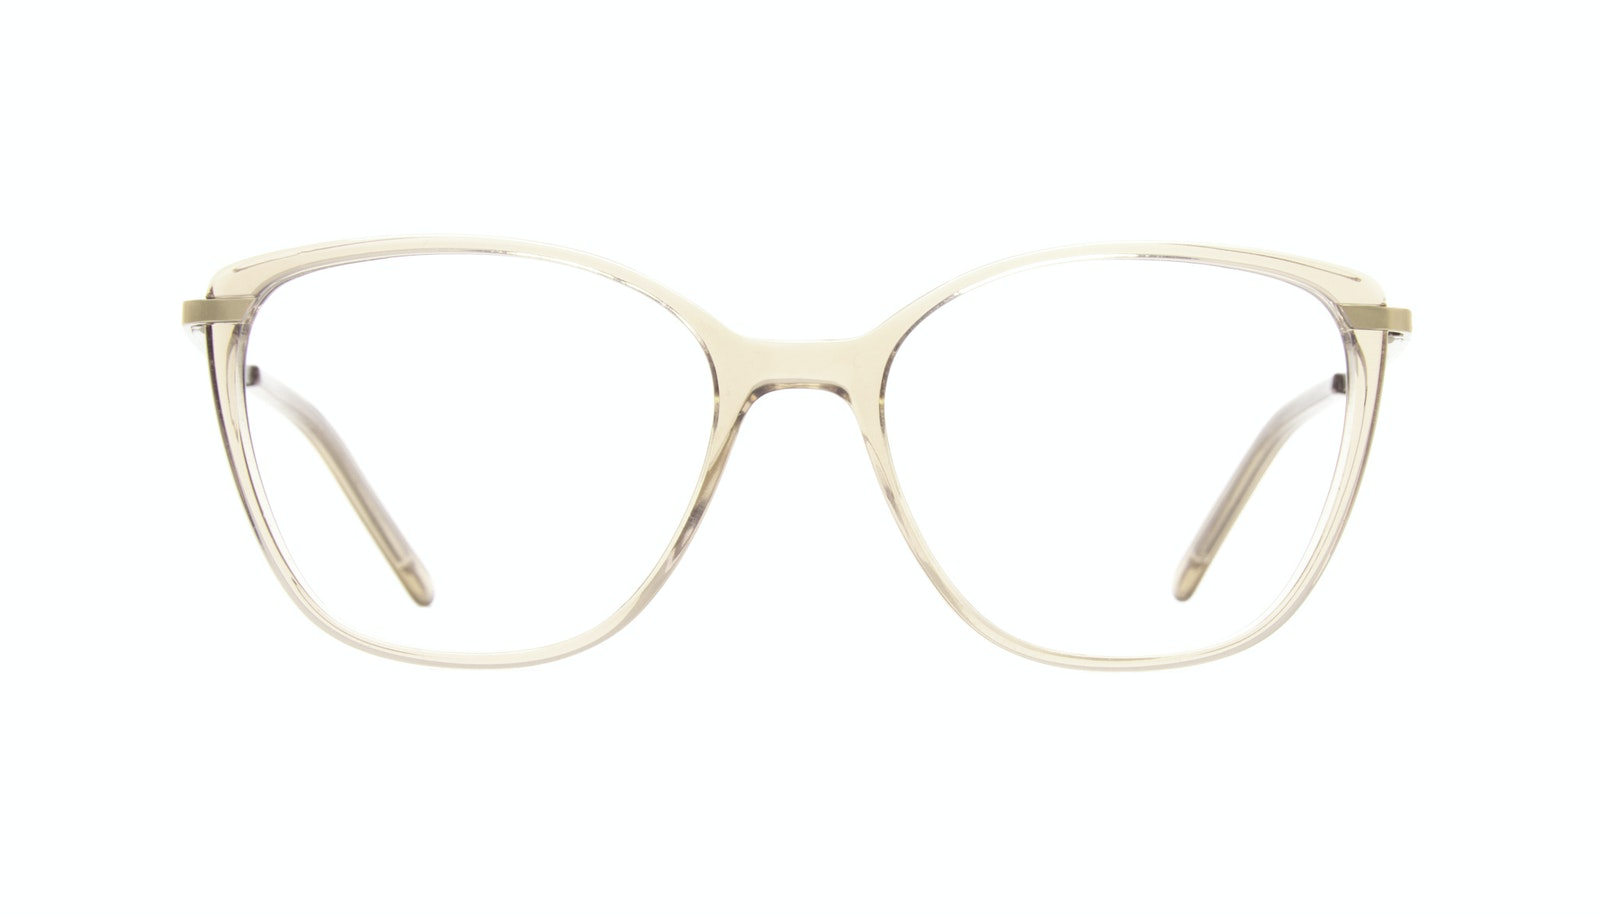 Affordable Fashion Glasses Rectangle Square Eyeglasses Women Illusion Blond